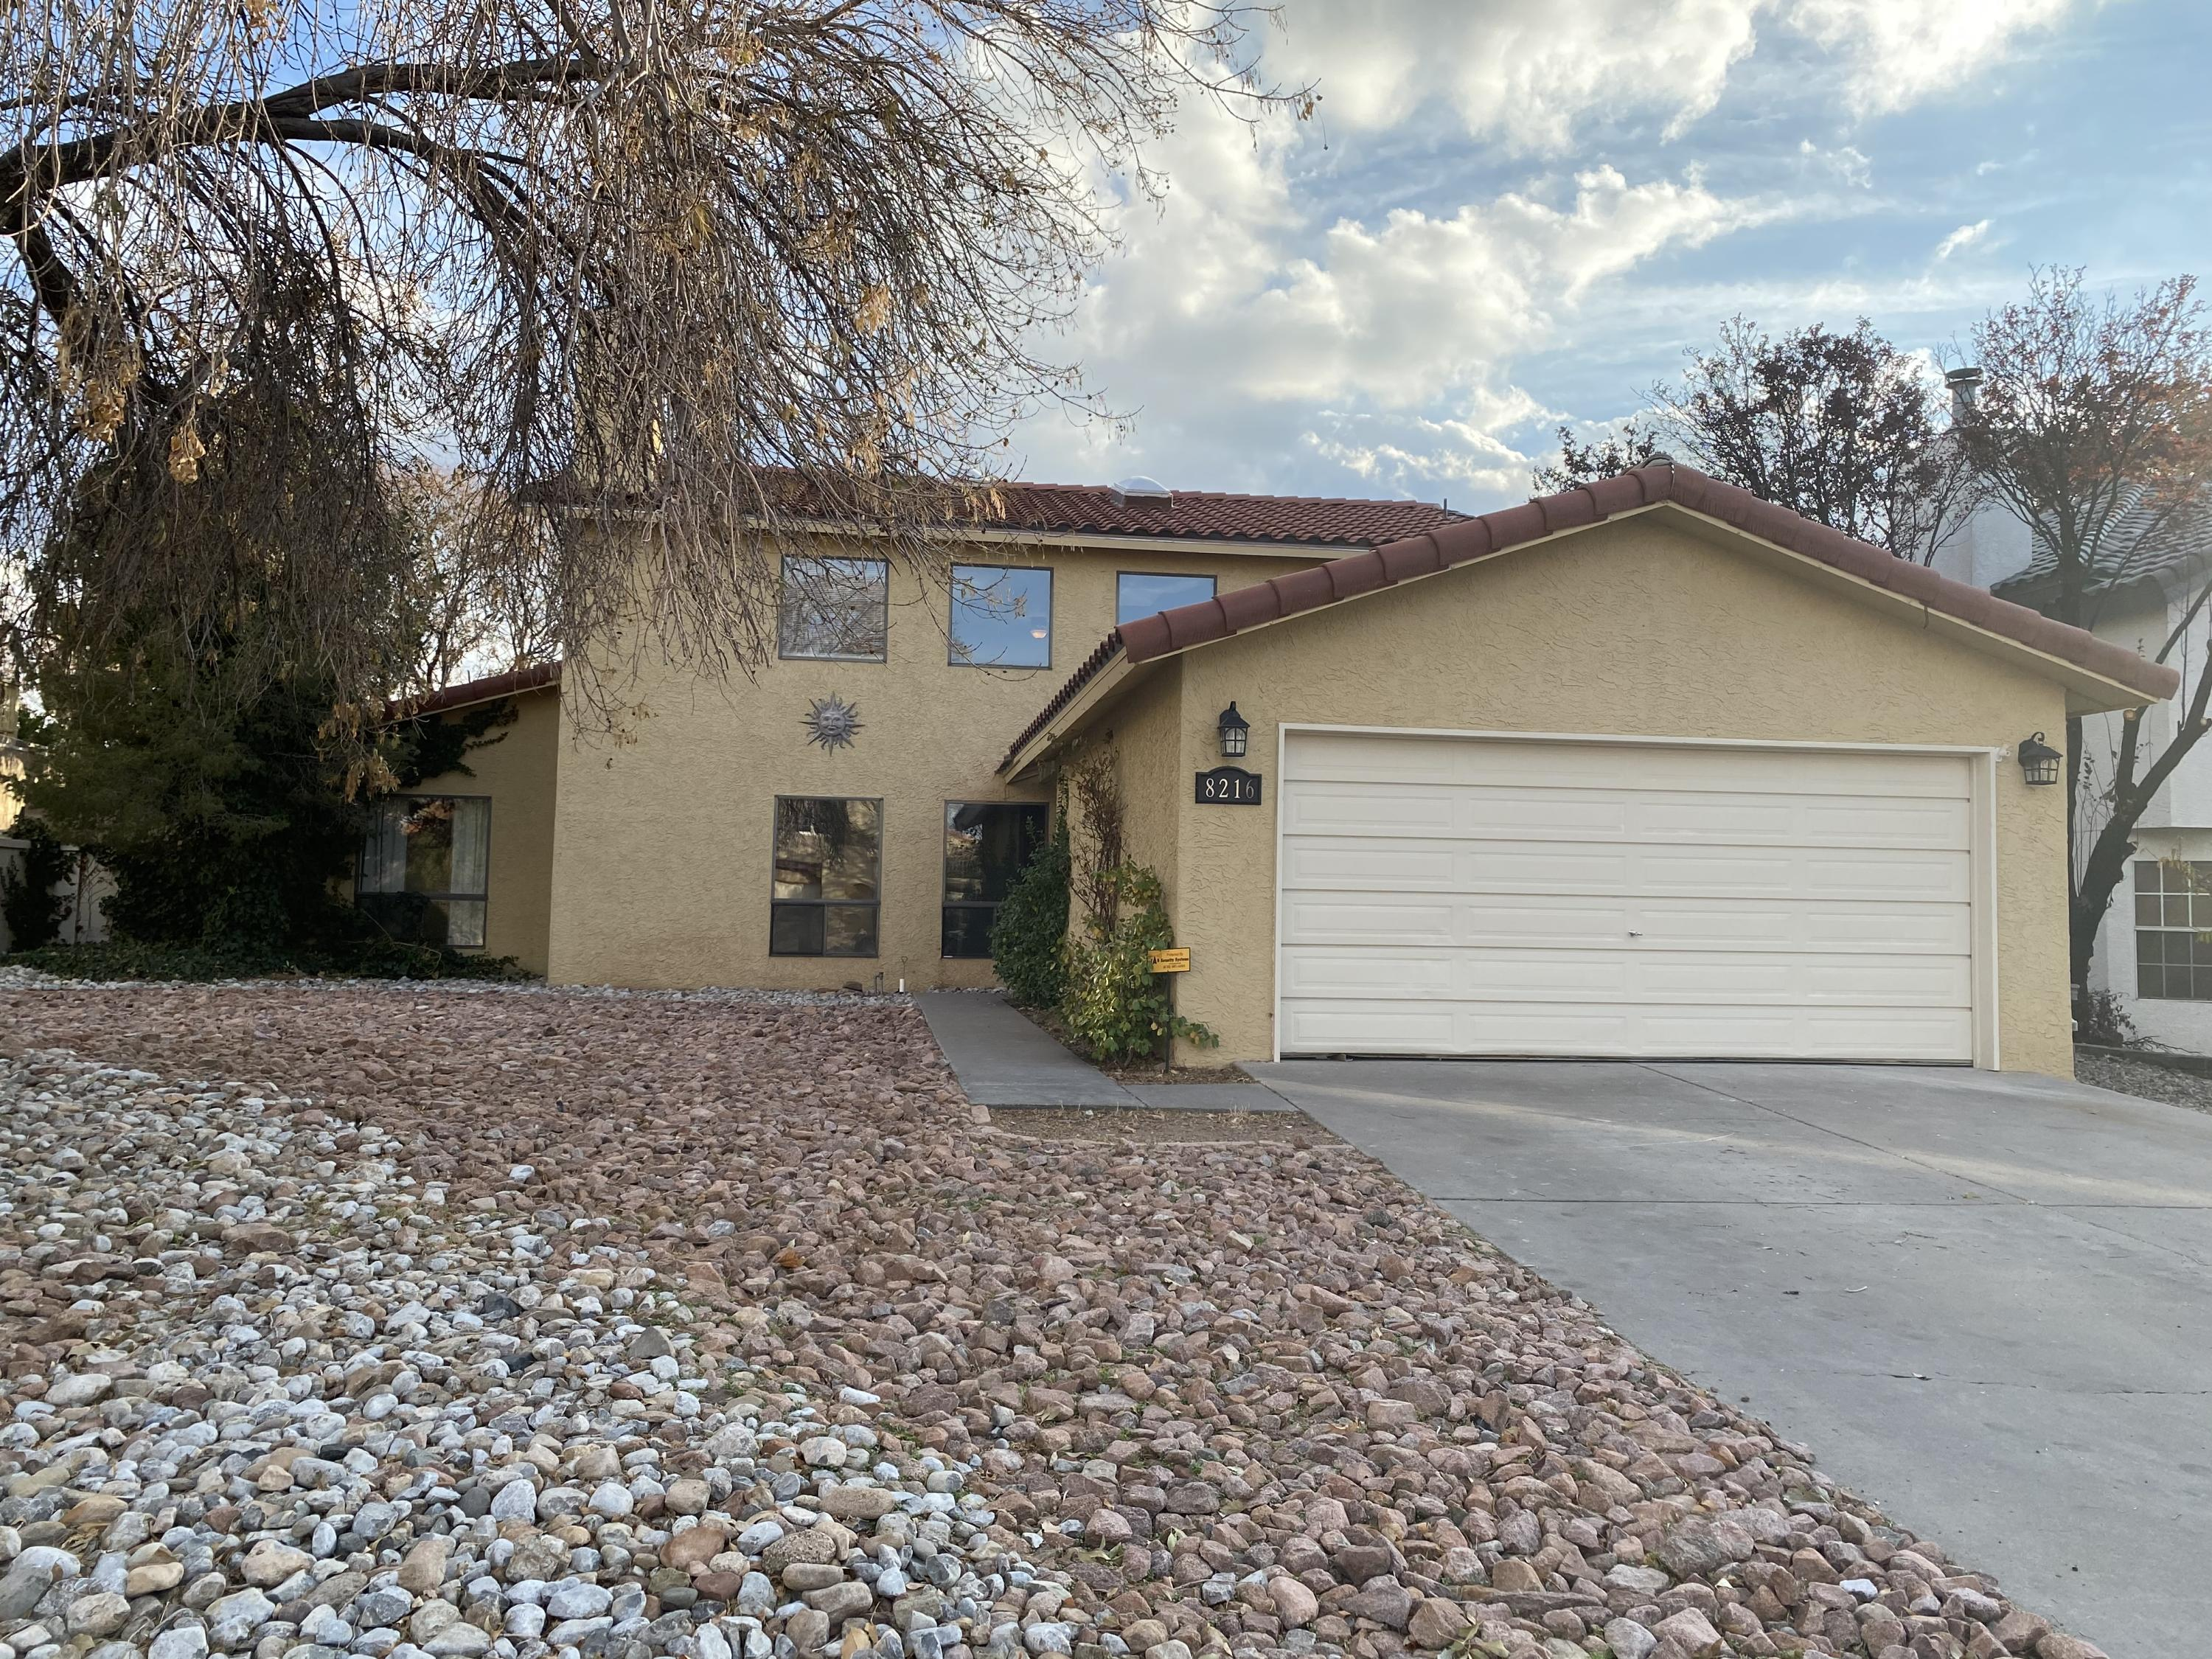 8216 R C GORMAN Avenue, Albuquerque NM 87122